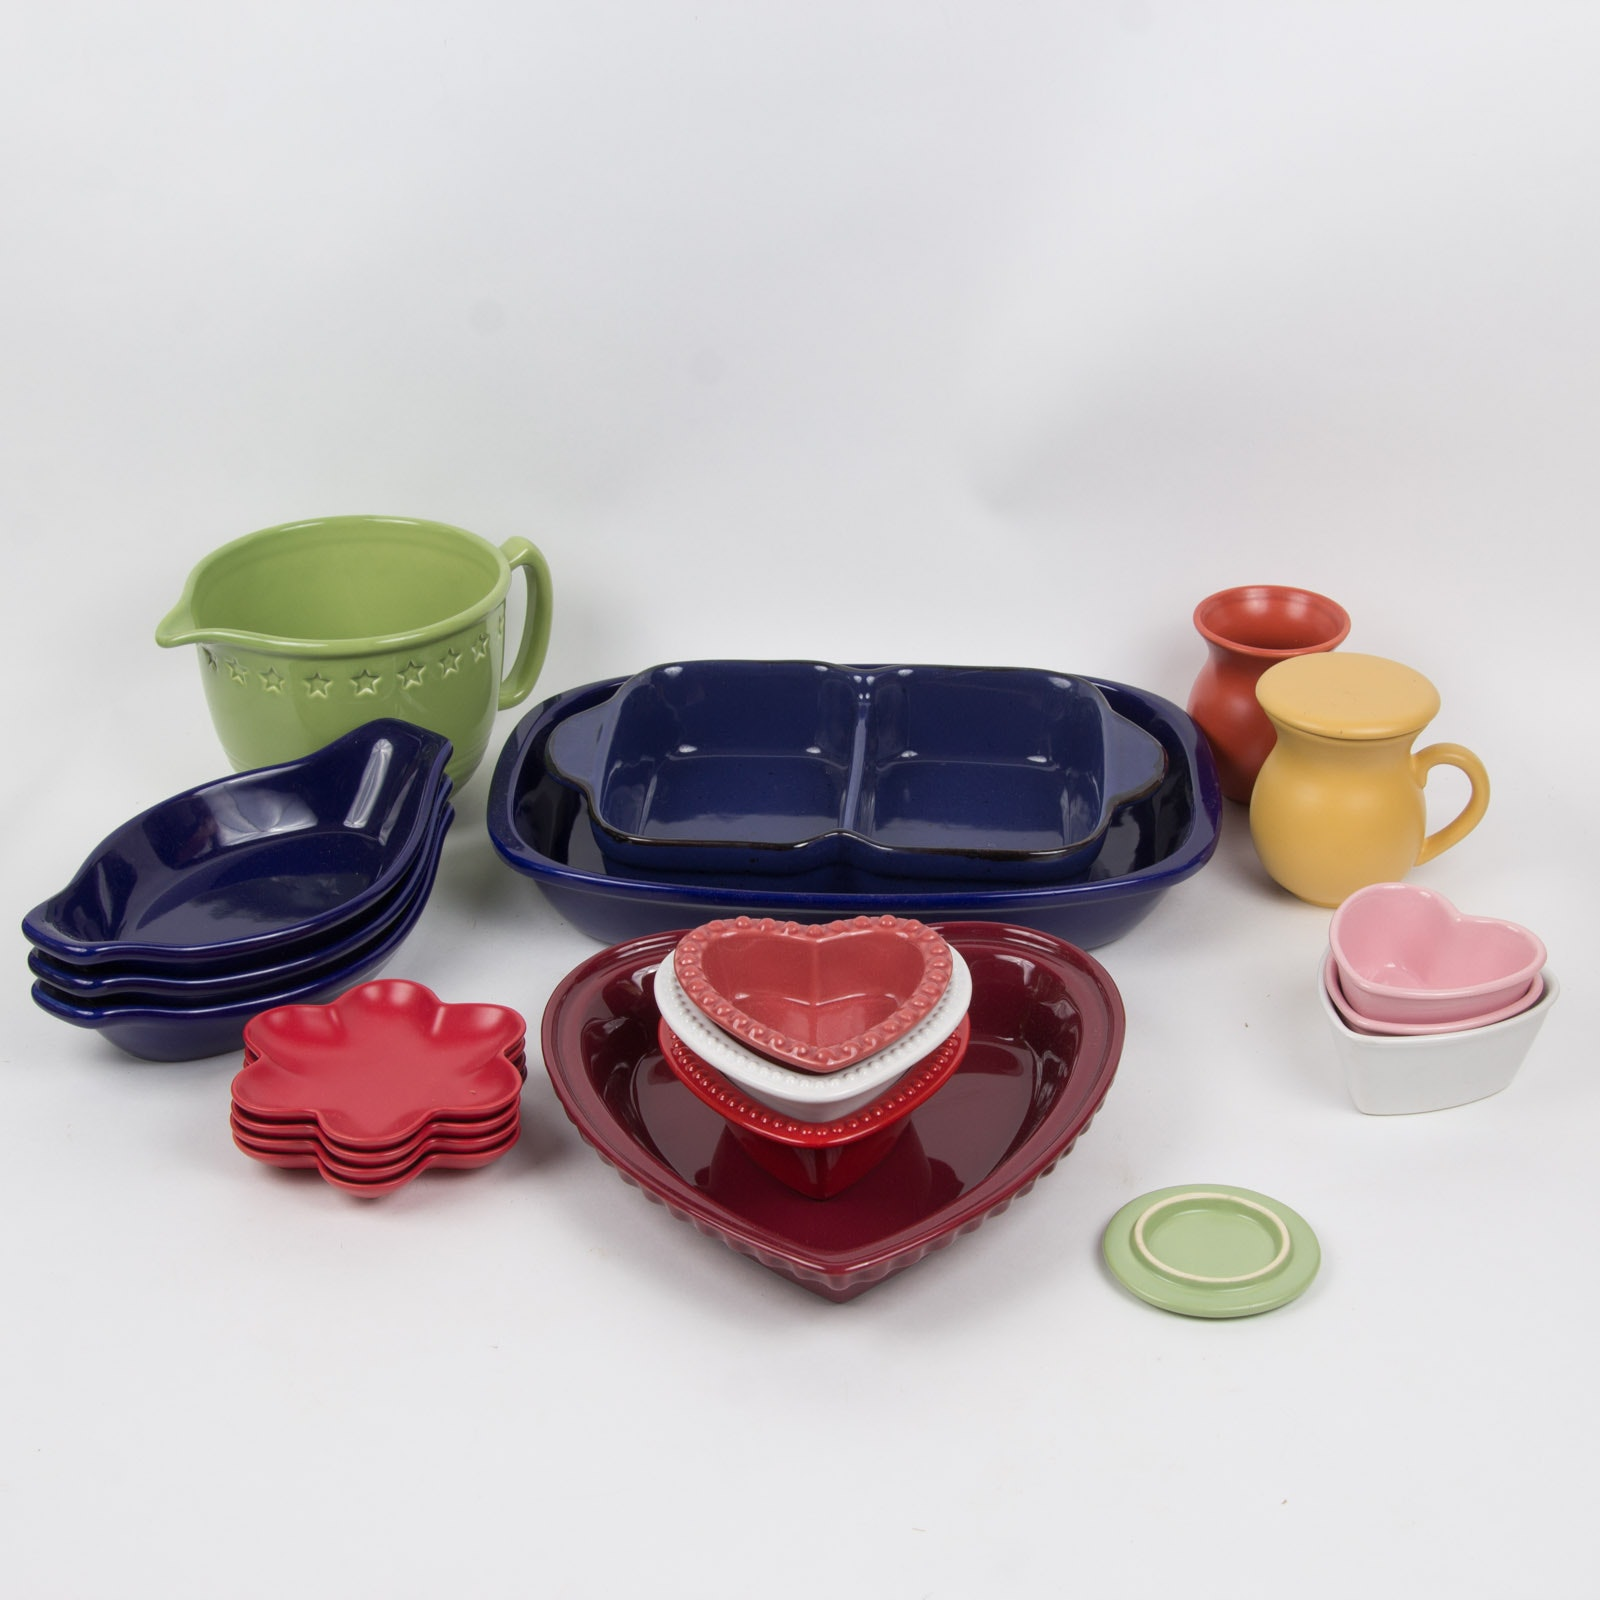 Large Collection of Ceramic Serveware by Chantal, Williams Sonoma, and Sabatier